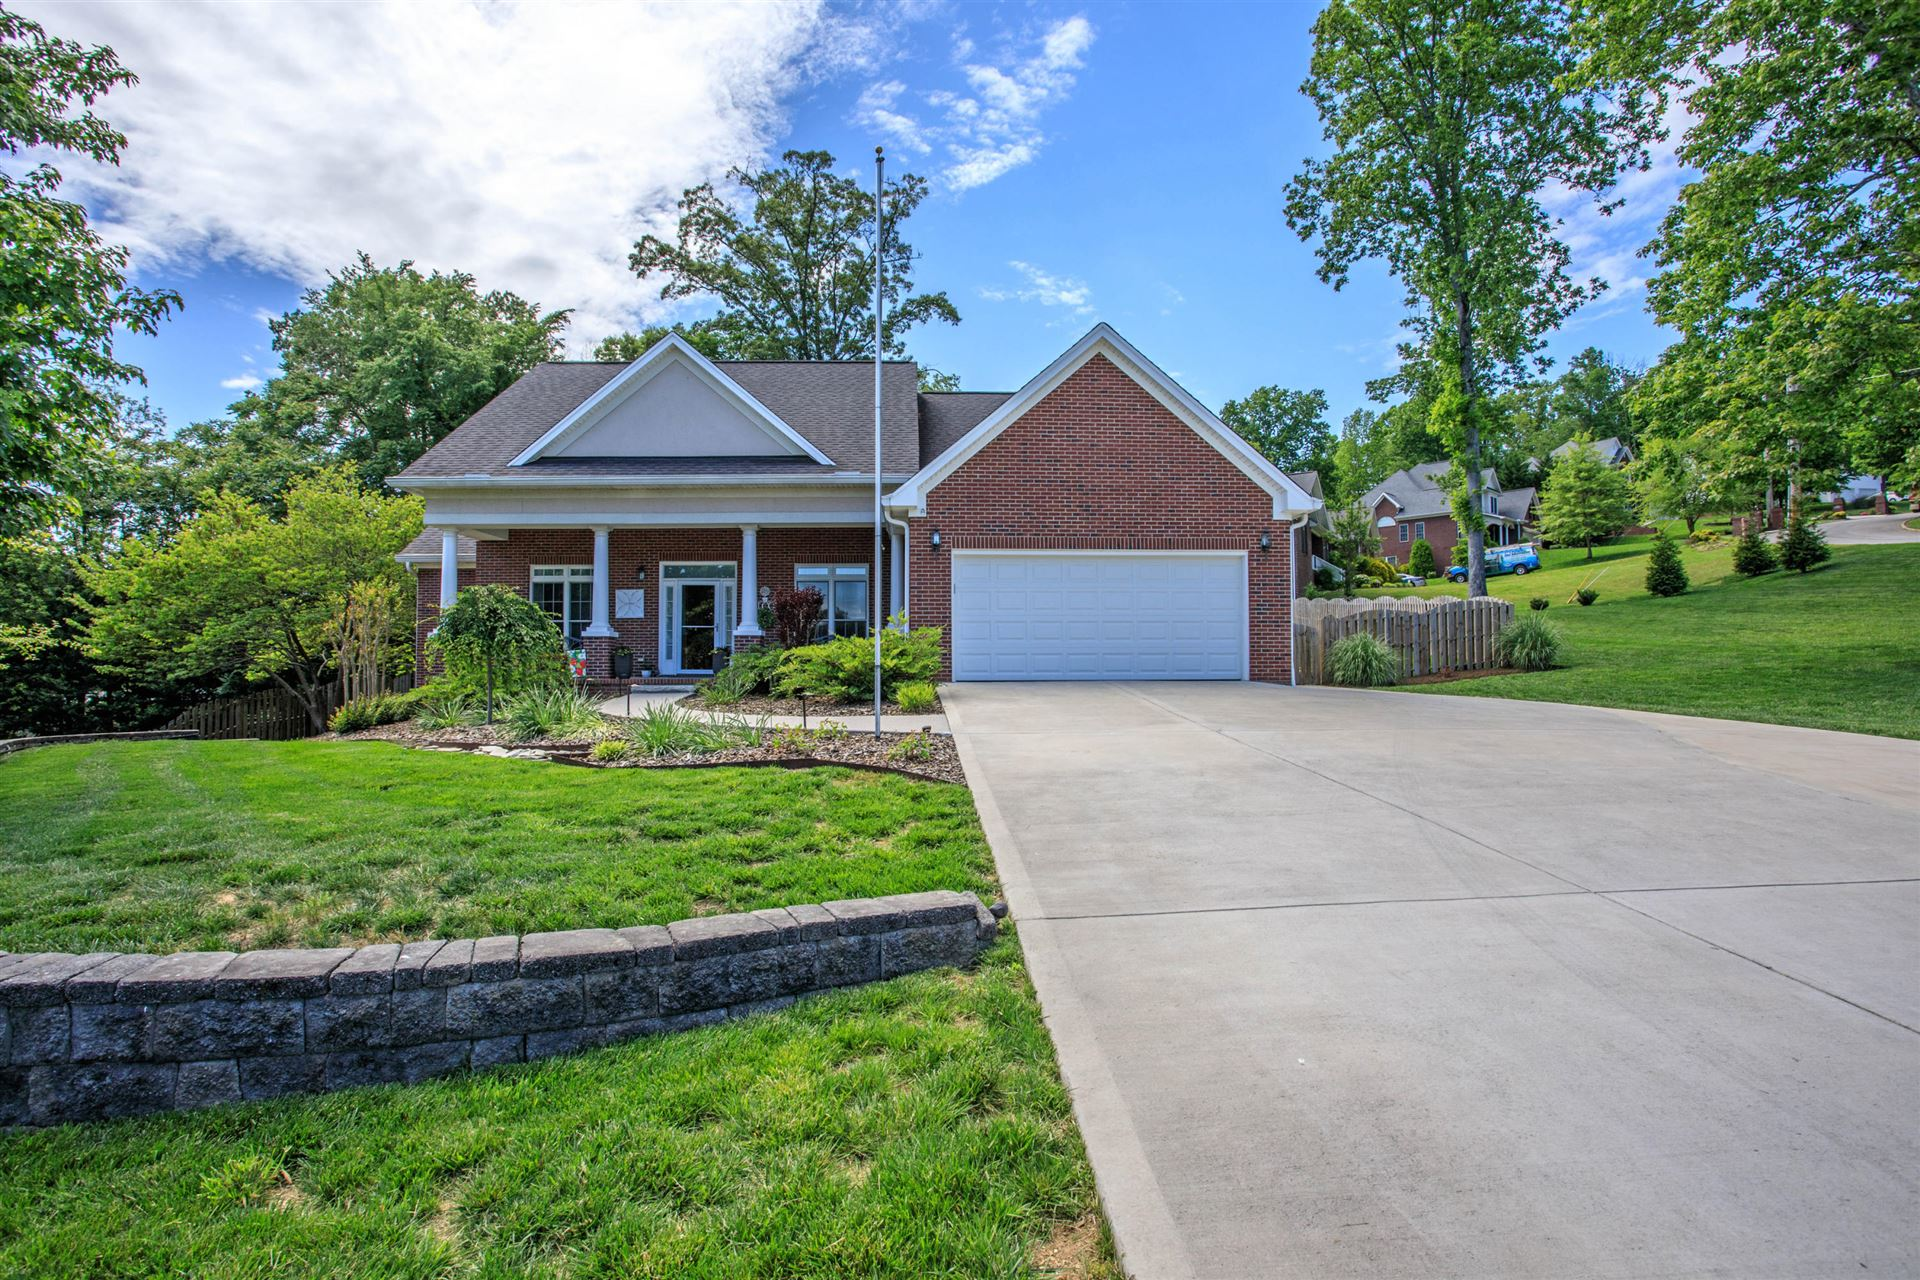 Photo of 106 Rutherford Court, Clinton, TN 37716 (MLS # 1117623)